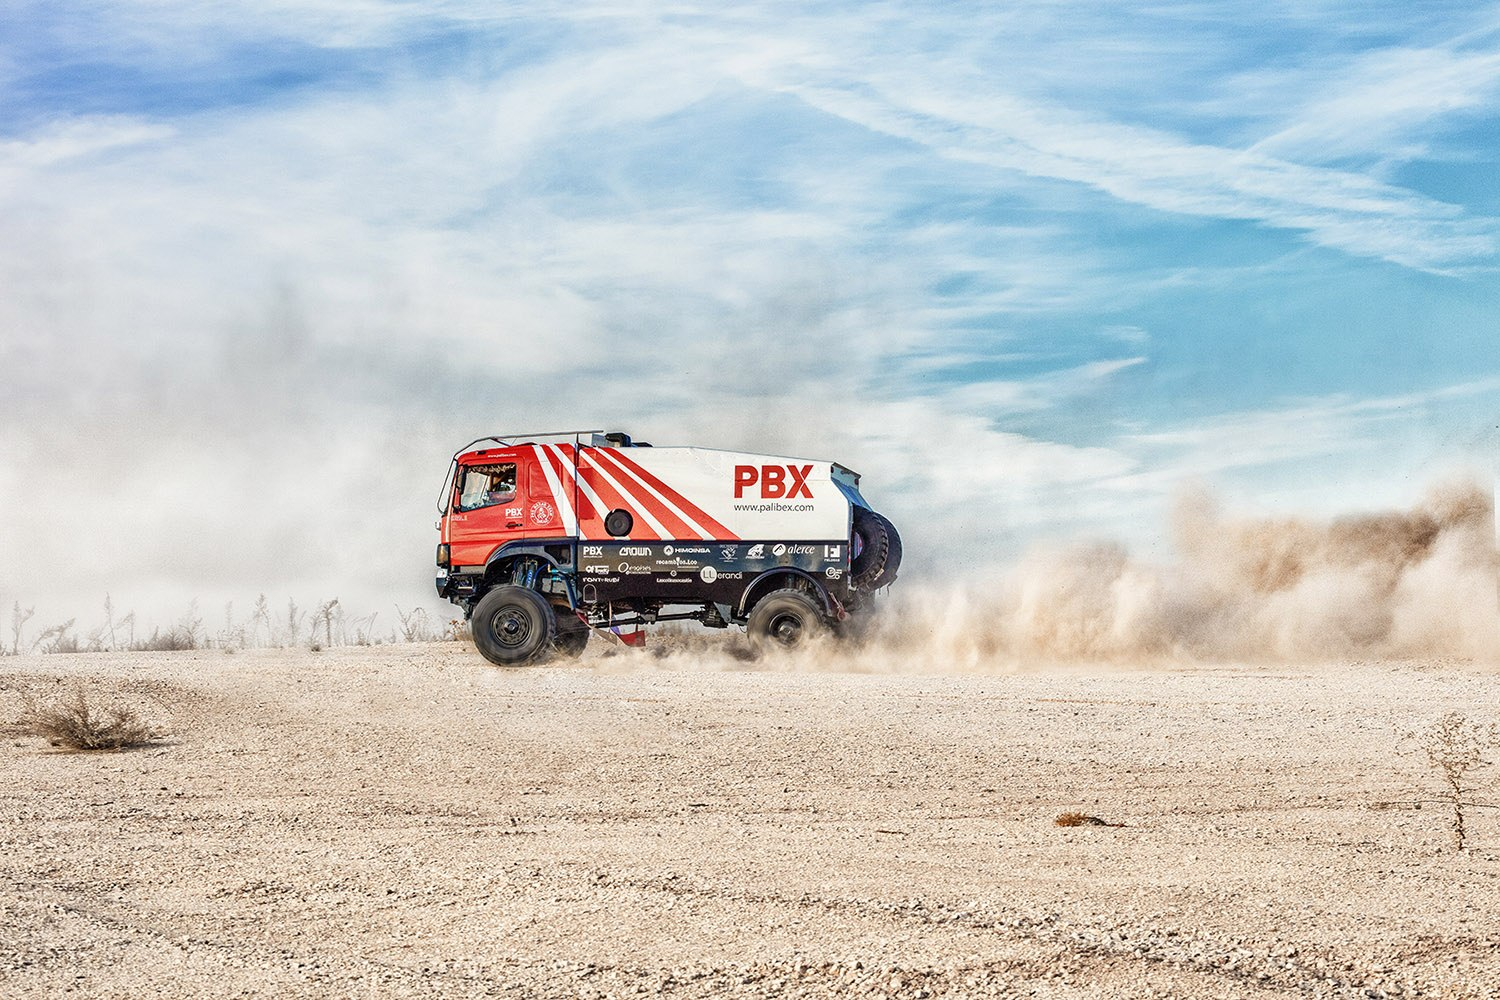 PBX DAKAR 2018 TEAM (1)